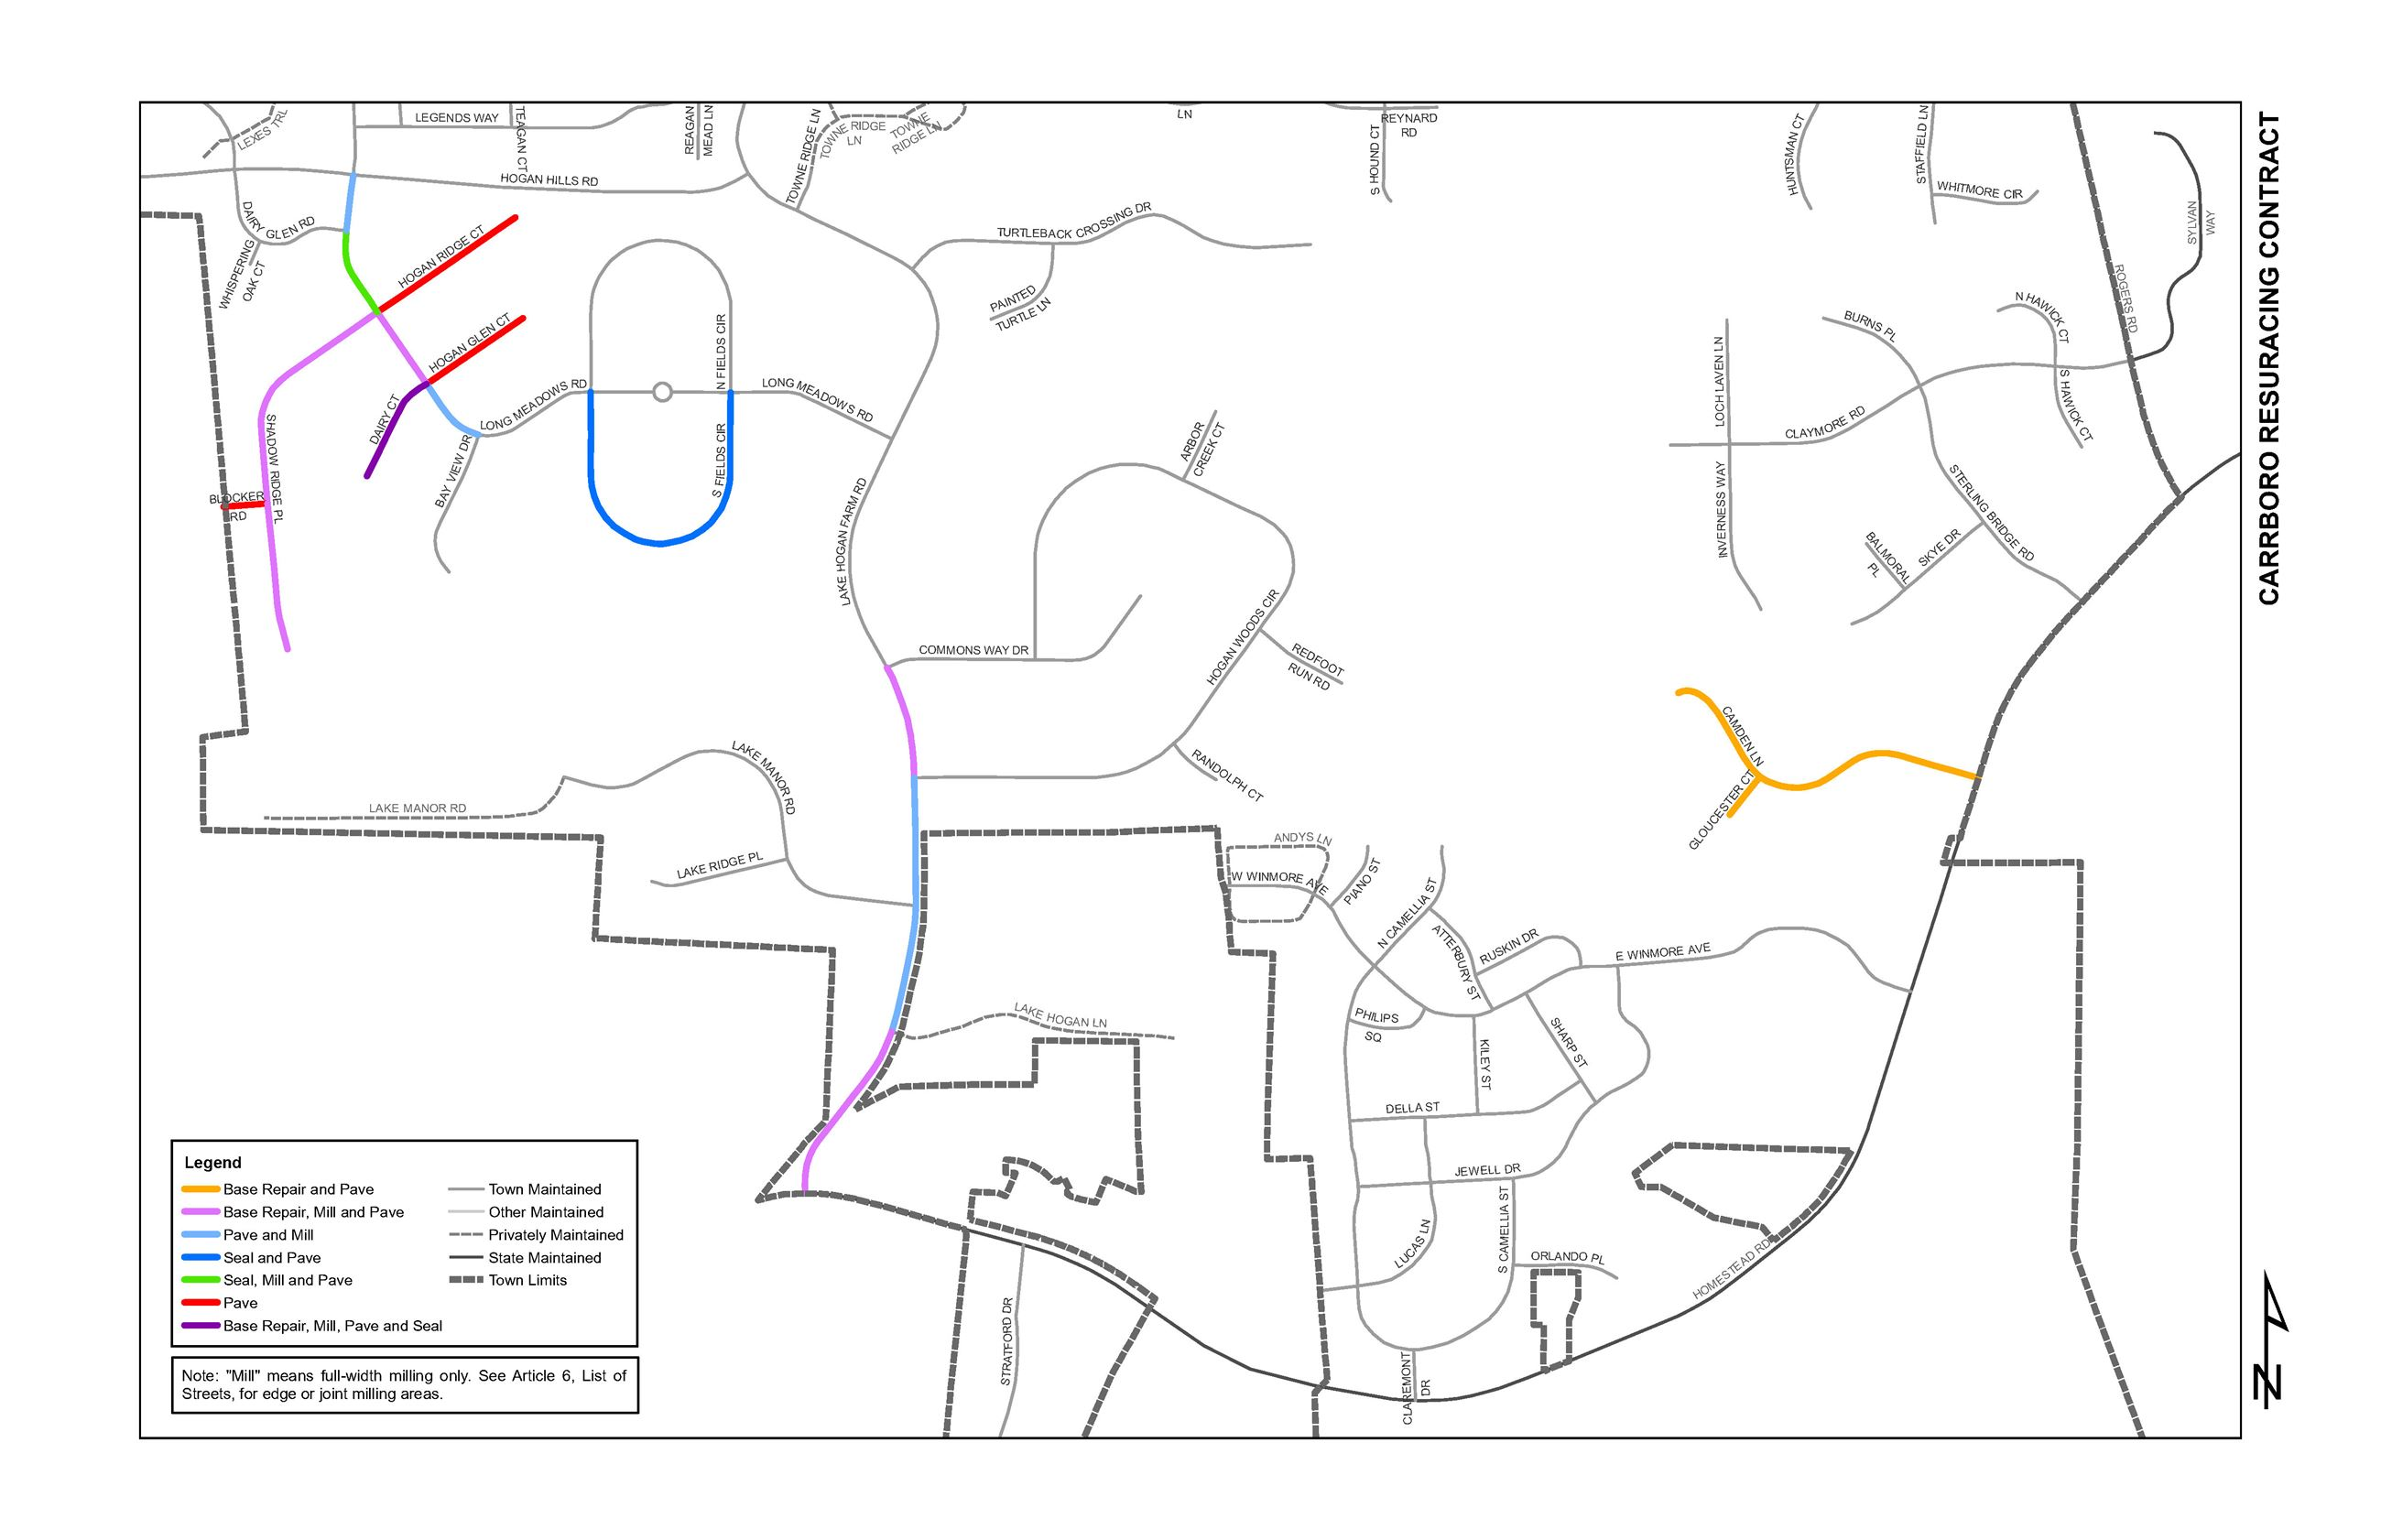 2020 Street Resurfacing Project Map Page 2